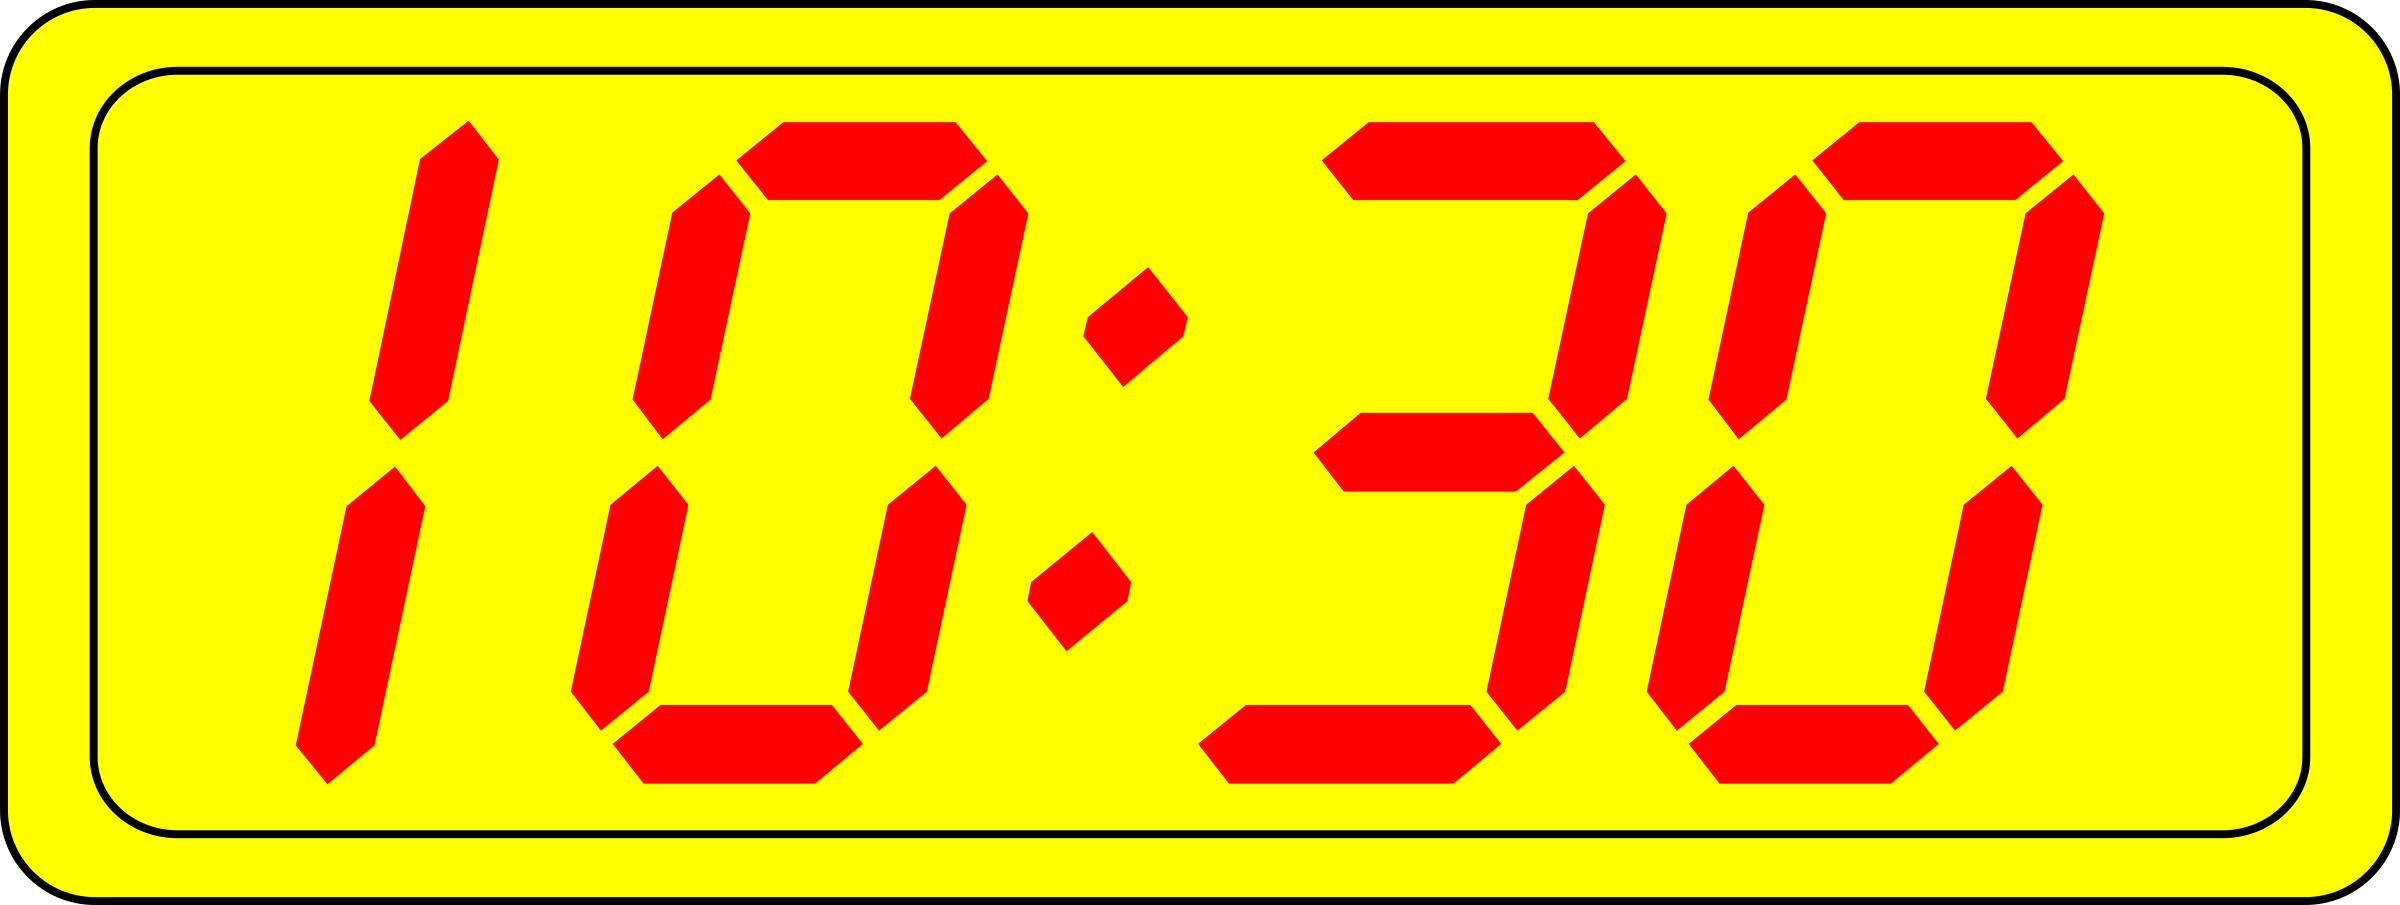 Digital Clock by manio1